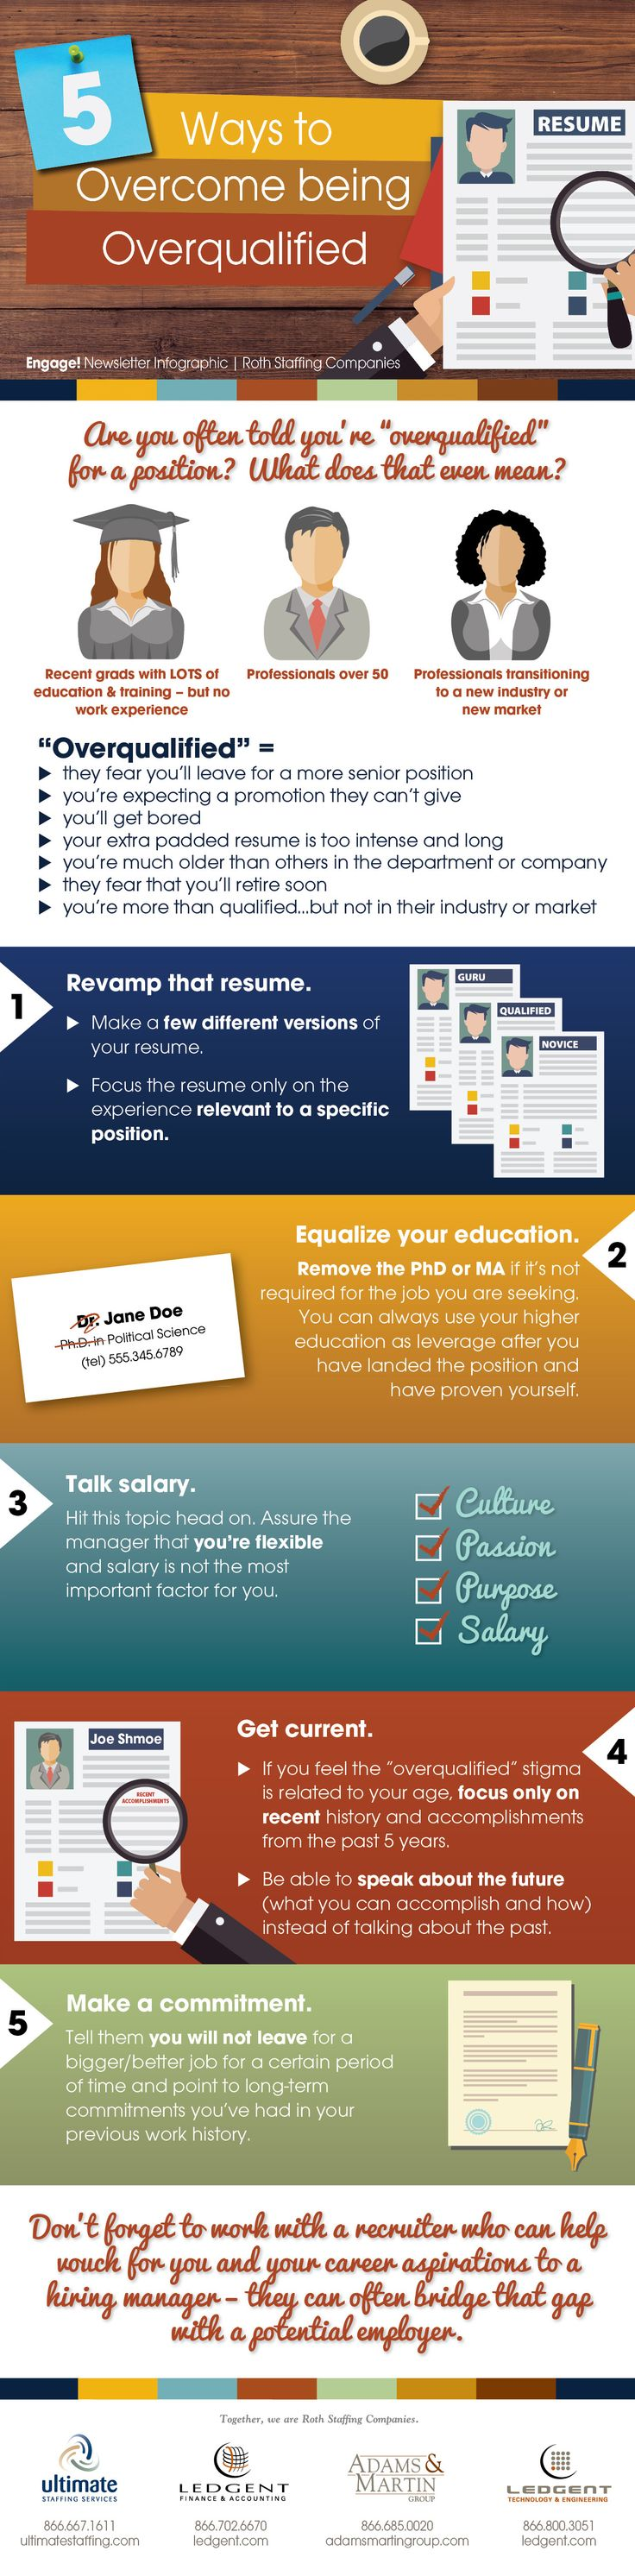 INFOGRAPHIC 5 Ways to Overcome being Overqualified